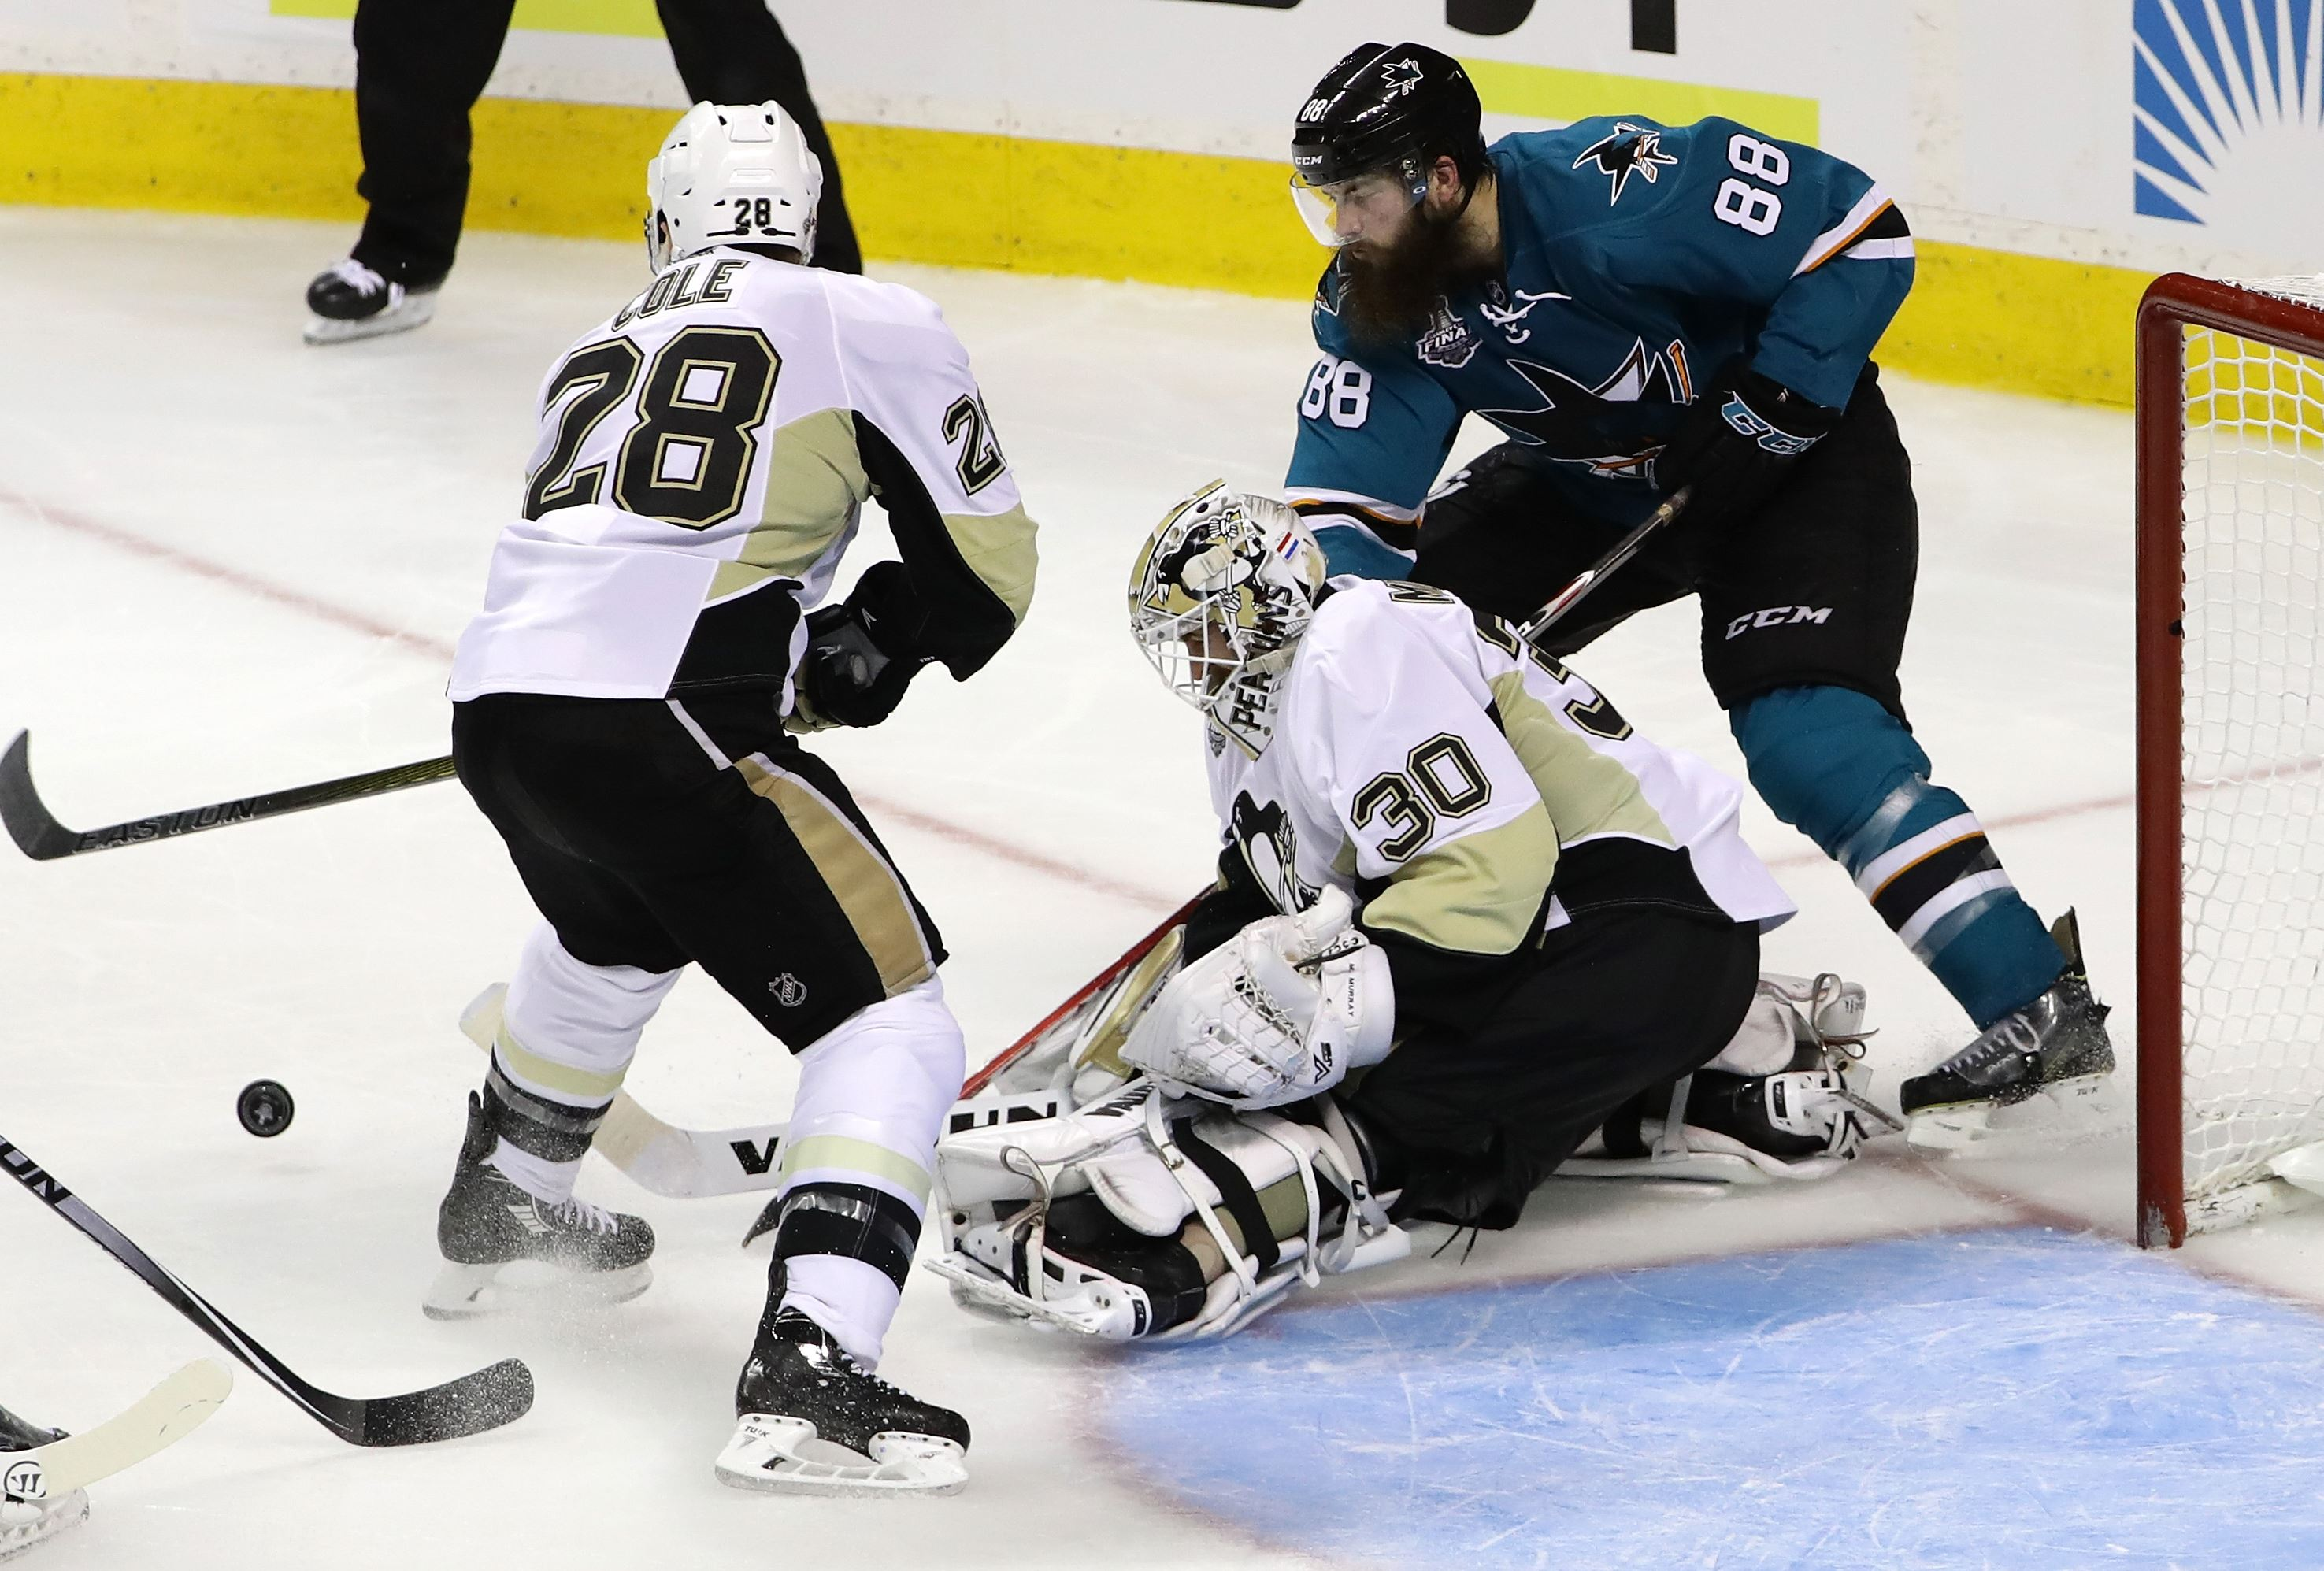 Donskoi's victor in OT gives Sharks 3-2 win